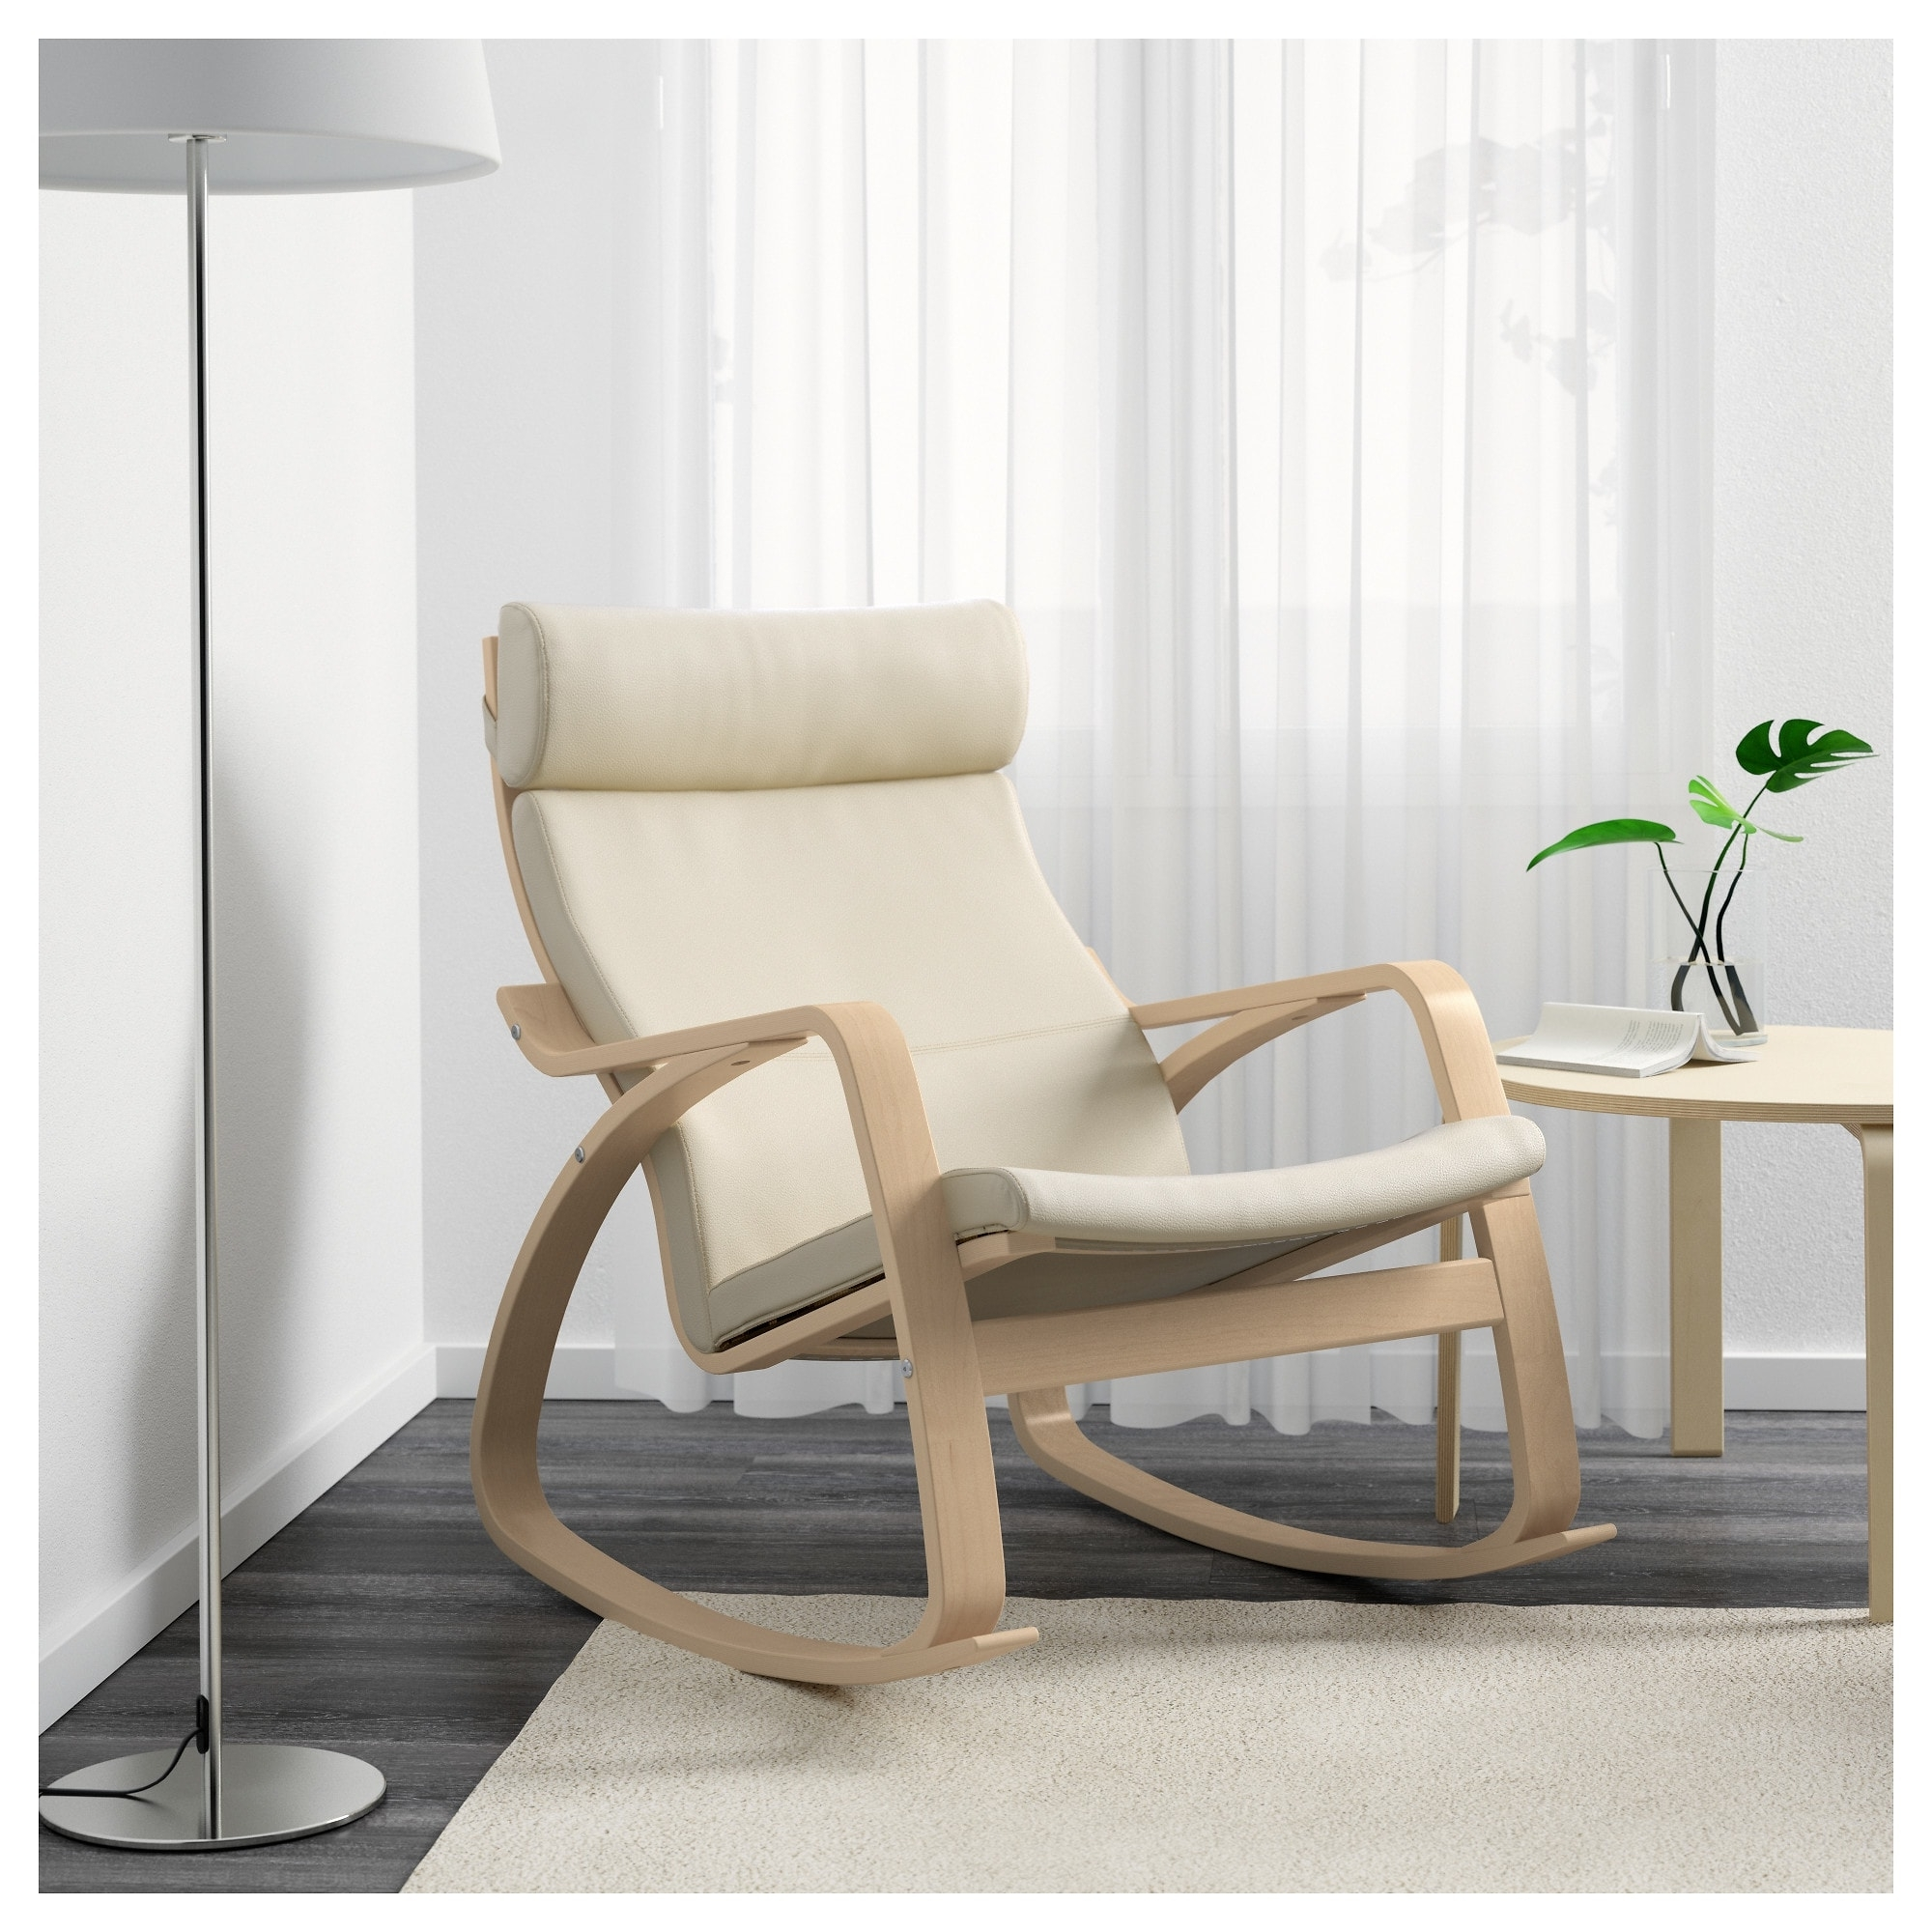 Newest Ikea Rocking Chairs pertaining to Poäng Rocking-Chair Birch Veneer/glose Eggshell - Ikea